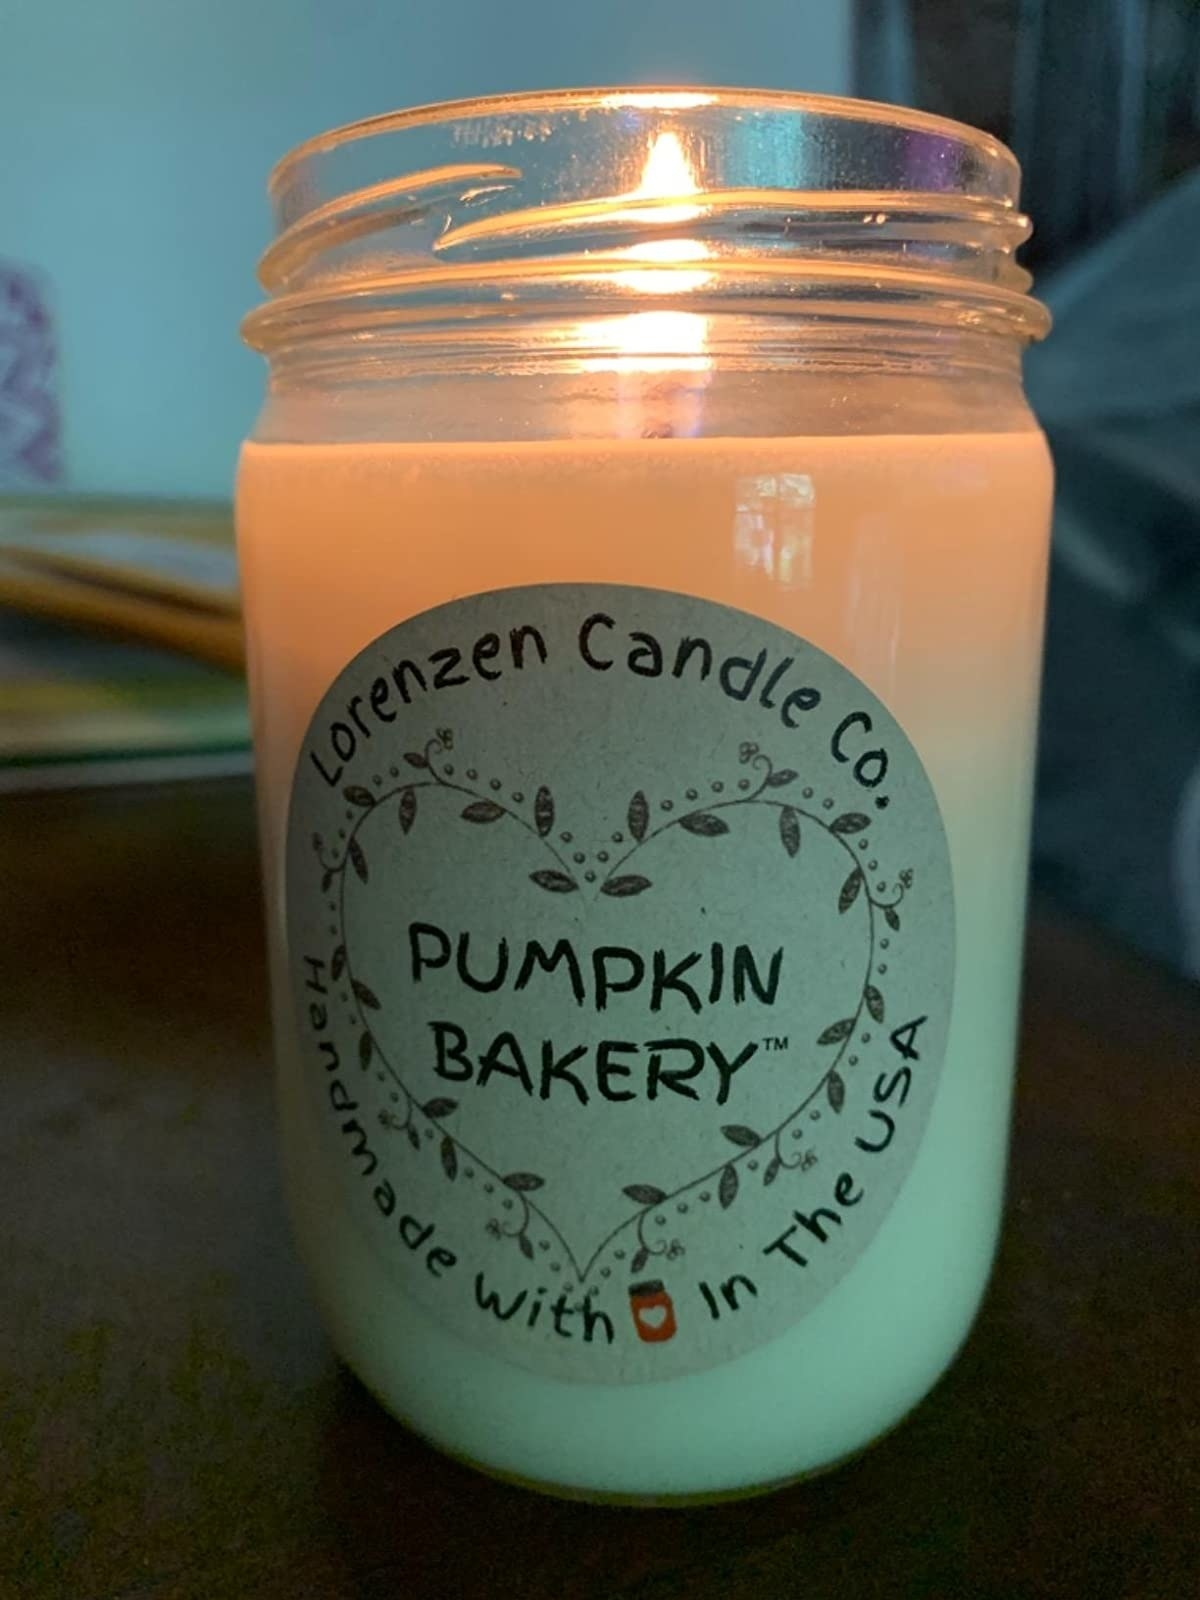 reviewer image of lit pumpkin bakery candle